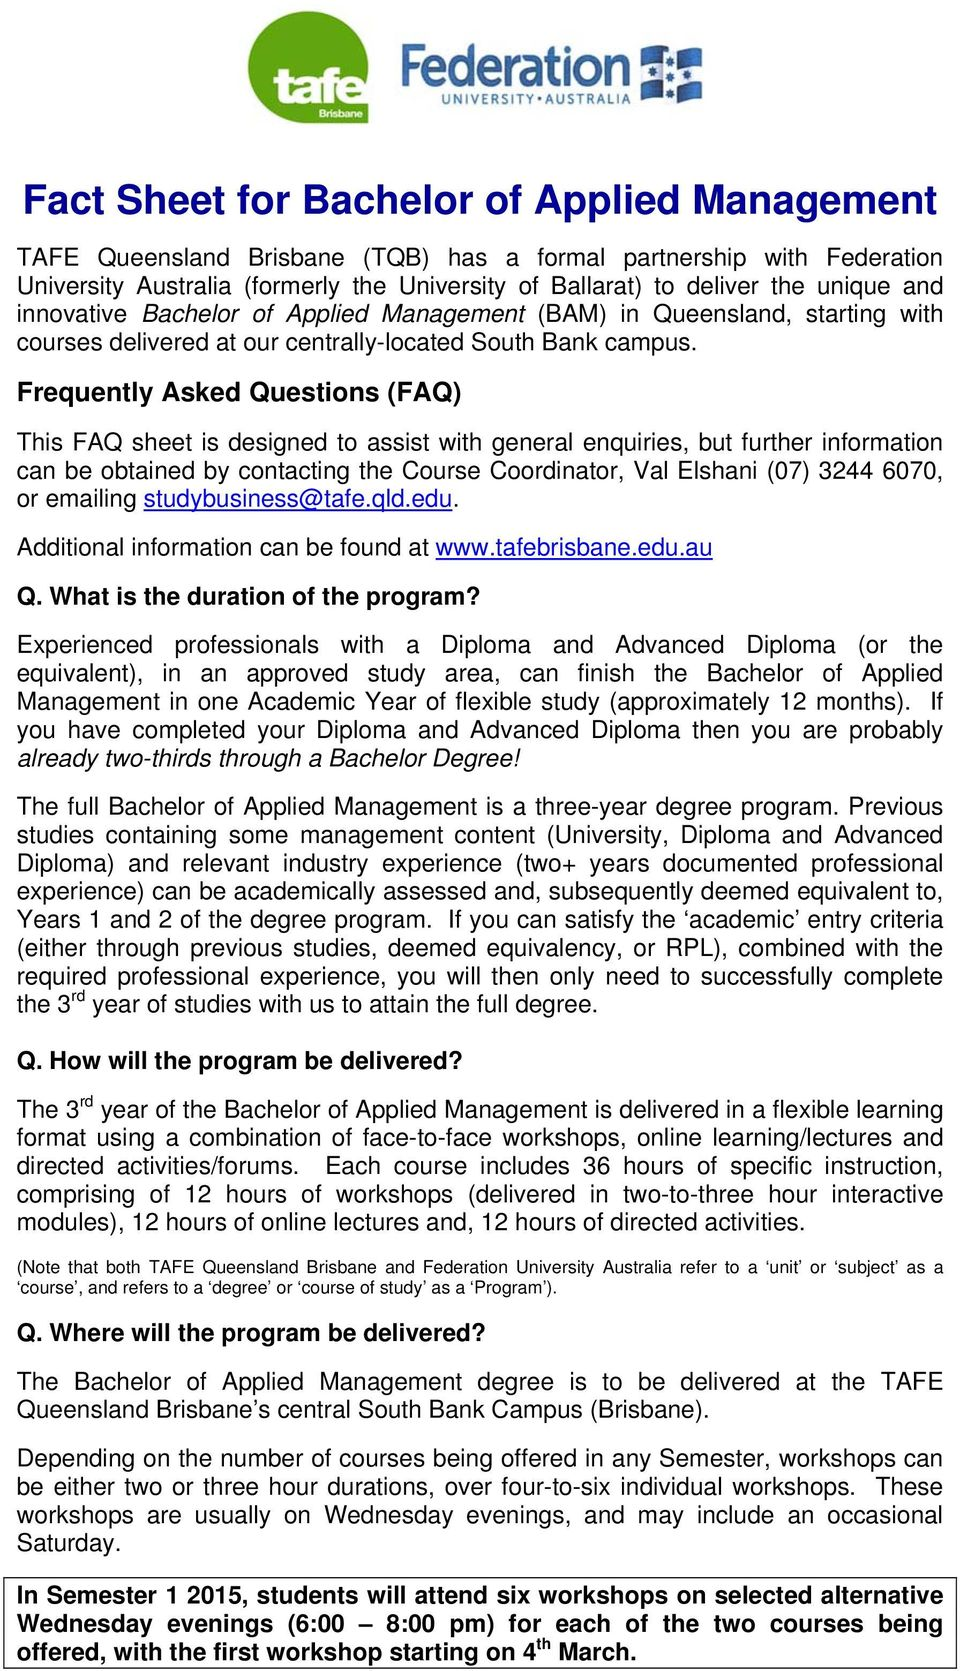 Fact Sheet for Bachelor of Applied Management - PDF